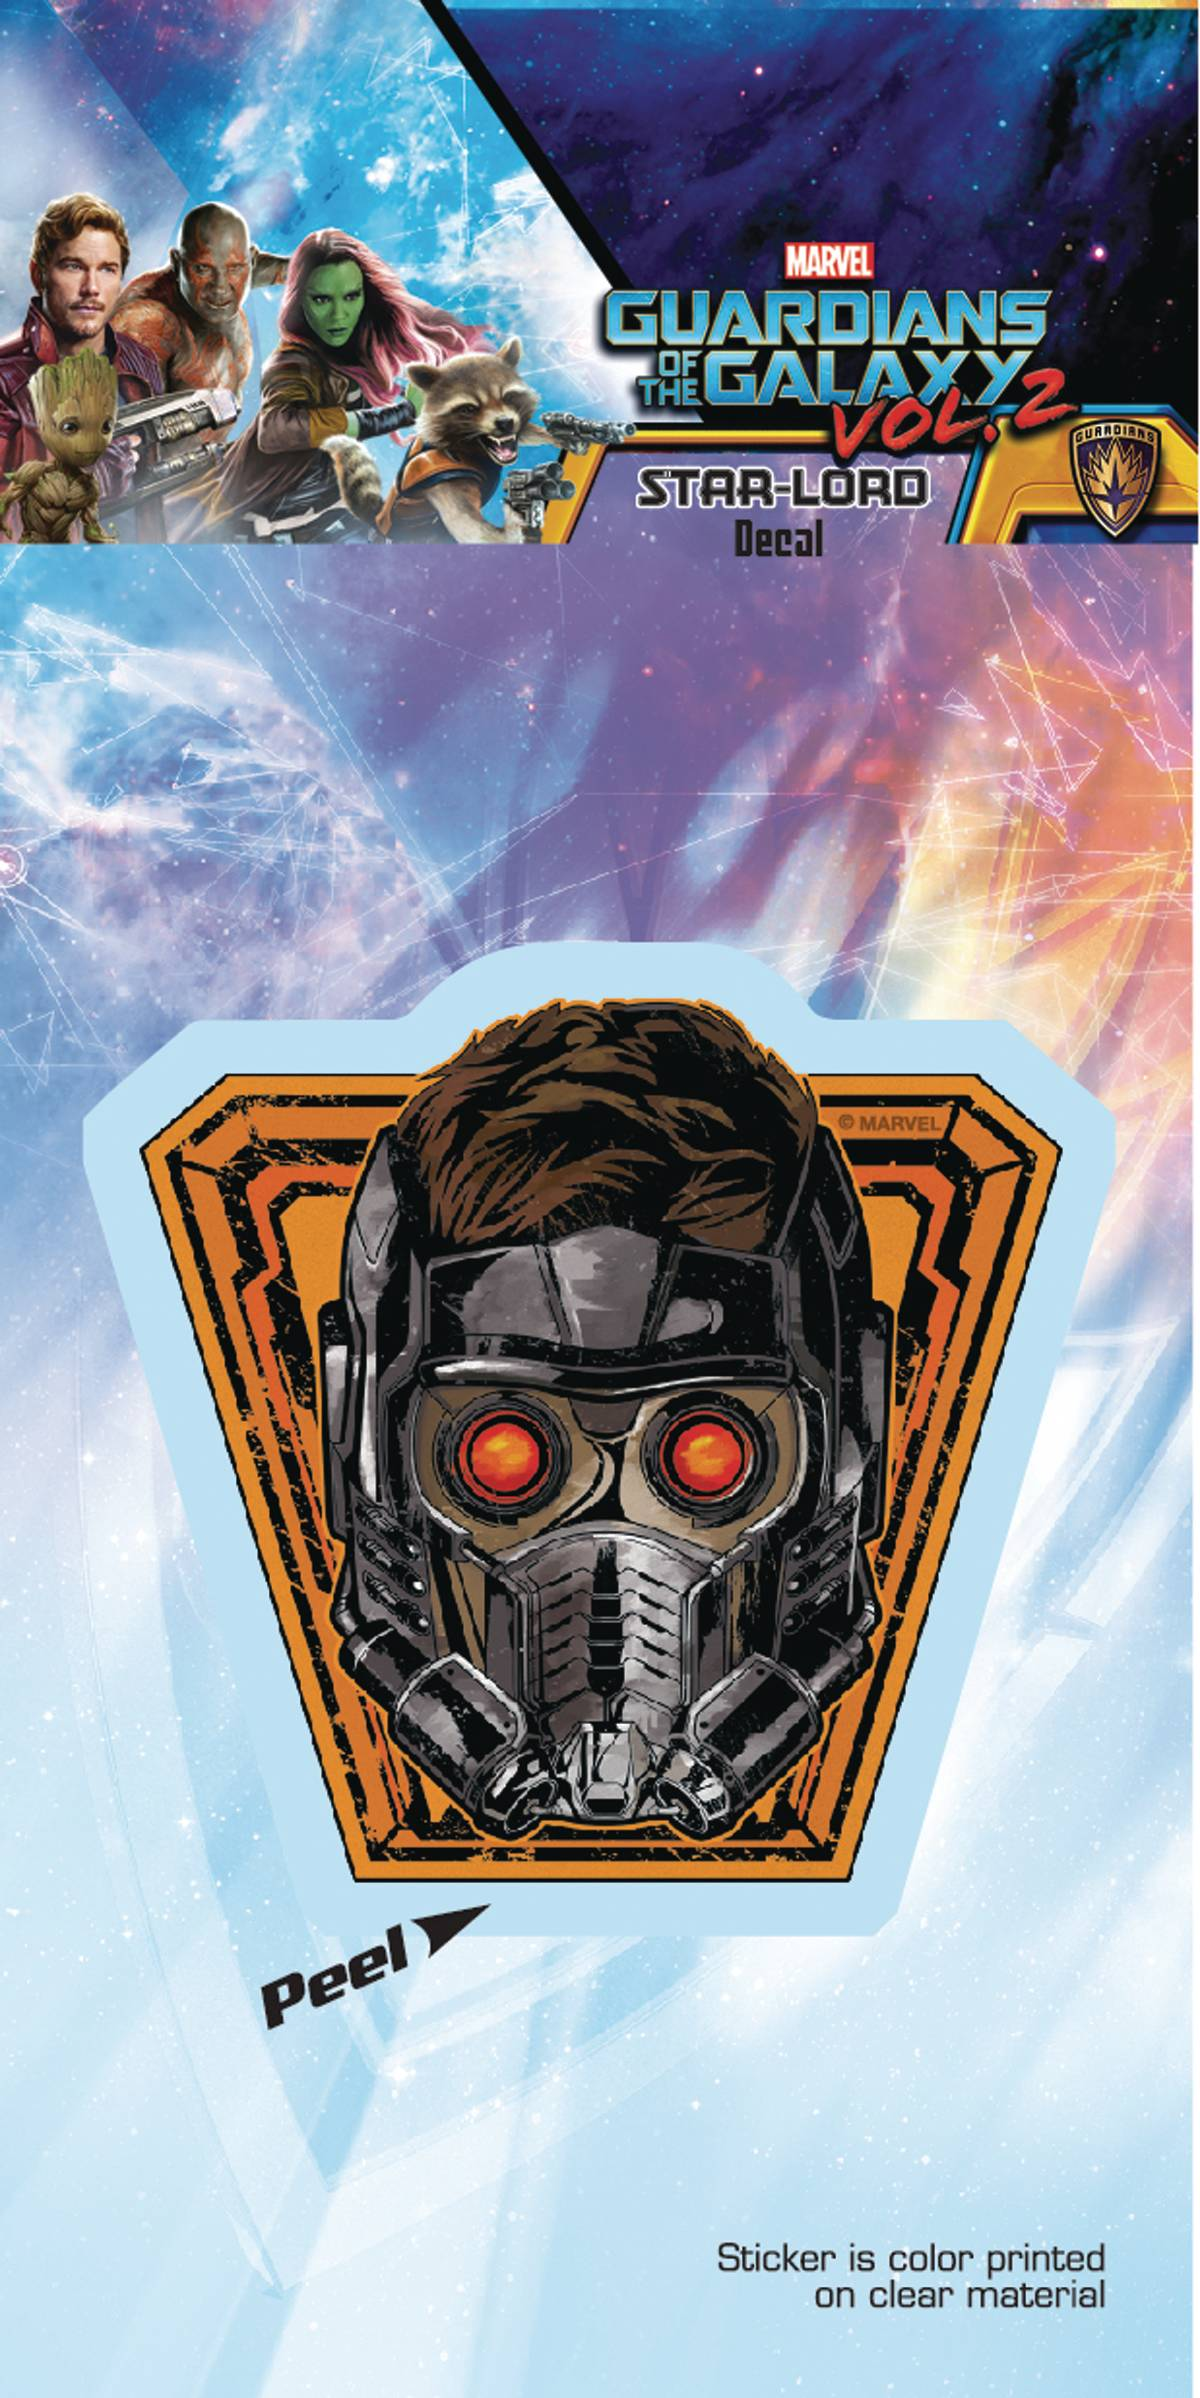 GUARDIANS OF THE GALAXY VOL2 STAR-LORD MASK DECAL.jpg